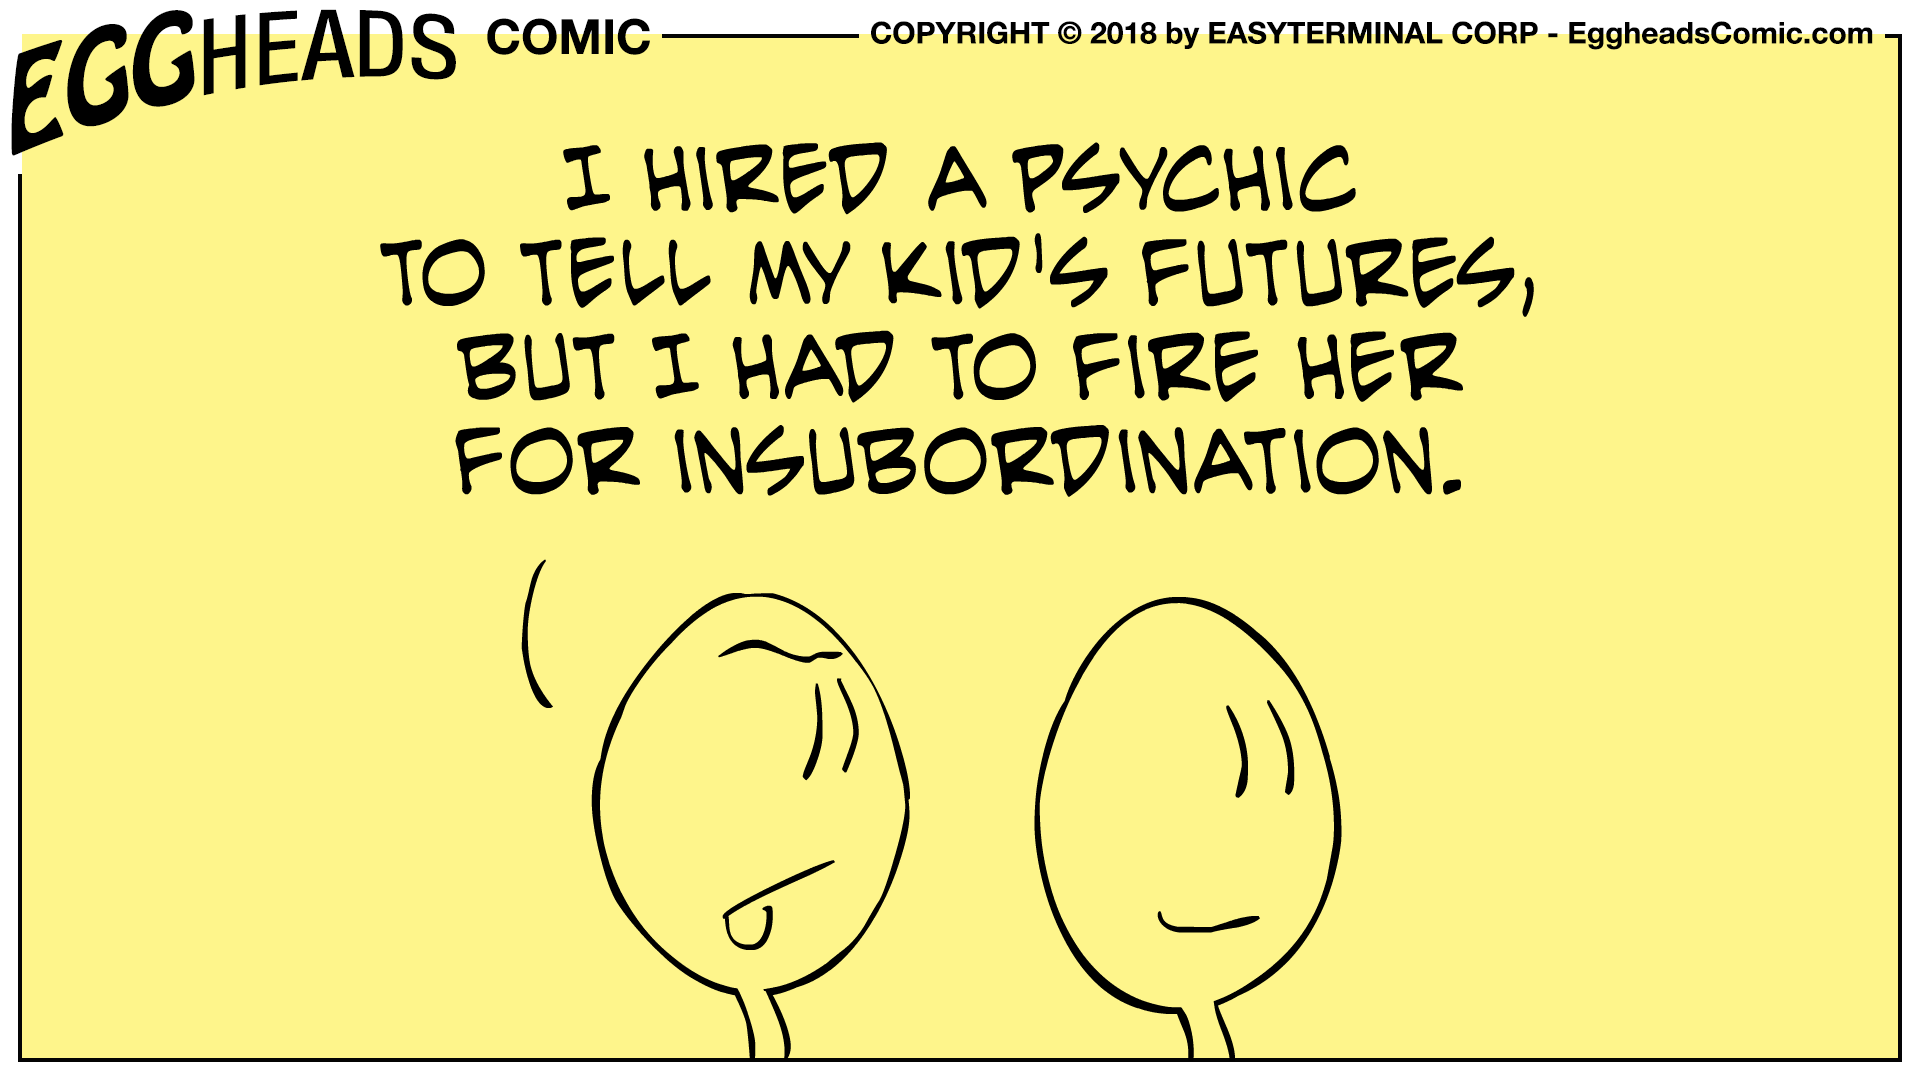 Webcomic Eggheads Comic Strip 055 I Hired A Psychic